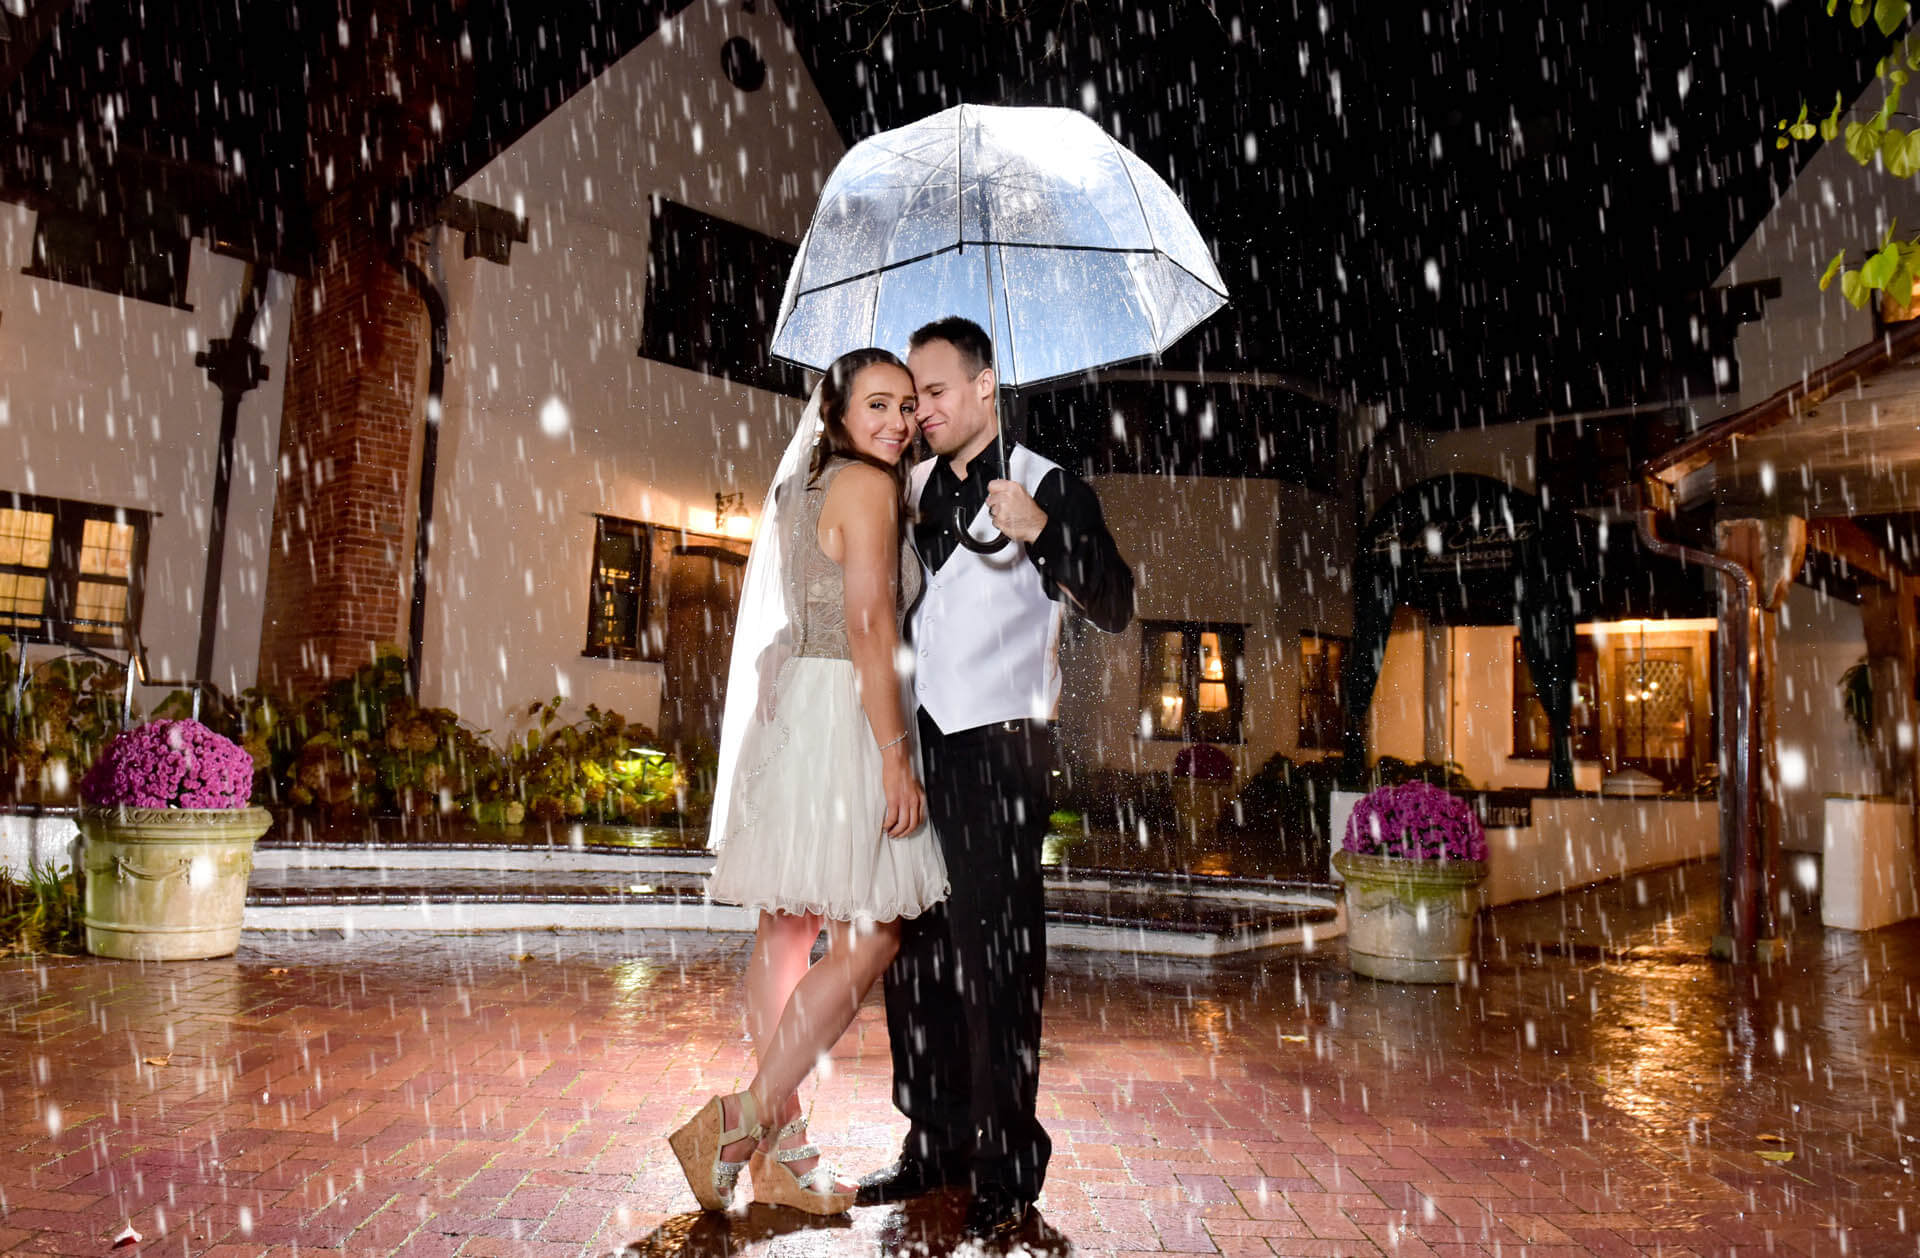 Epic Wedding portrait showing the bride and groom at the end of the wedding day in the rain at the Buhl Estates at Addison Oaks in Leonard, Michigan.